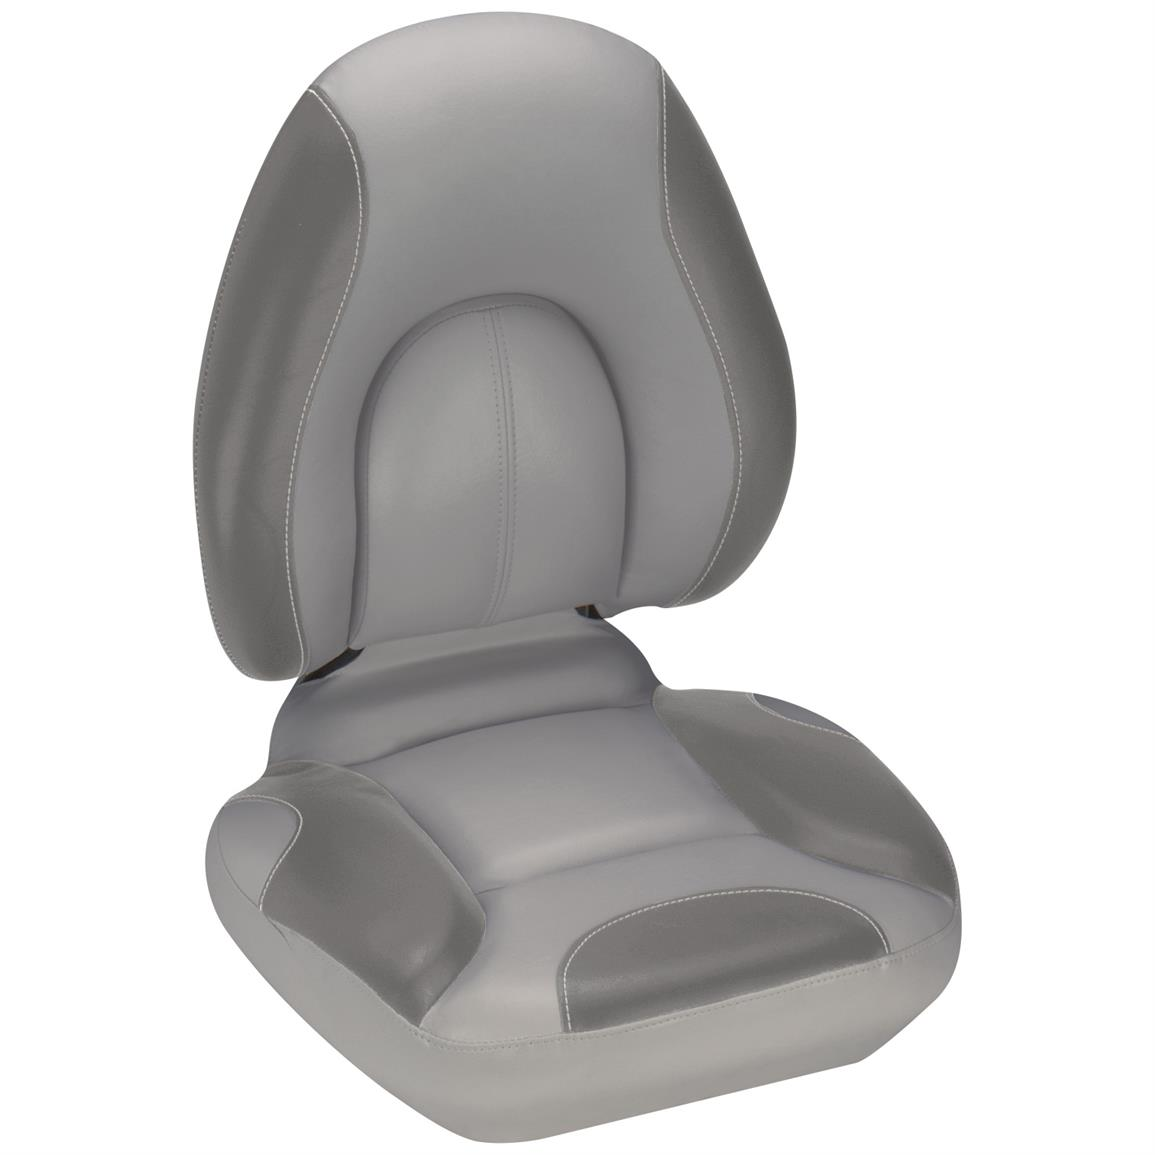 Attwood® Centric SAS™ Boat Seat, Gray Base Color / Smoke